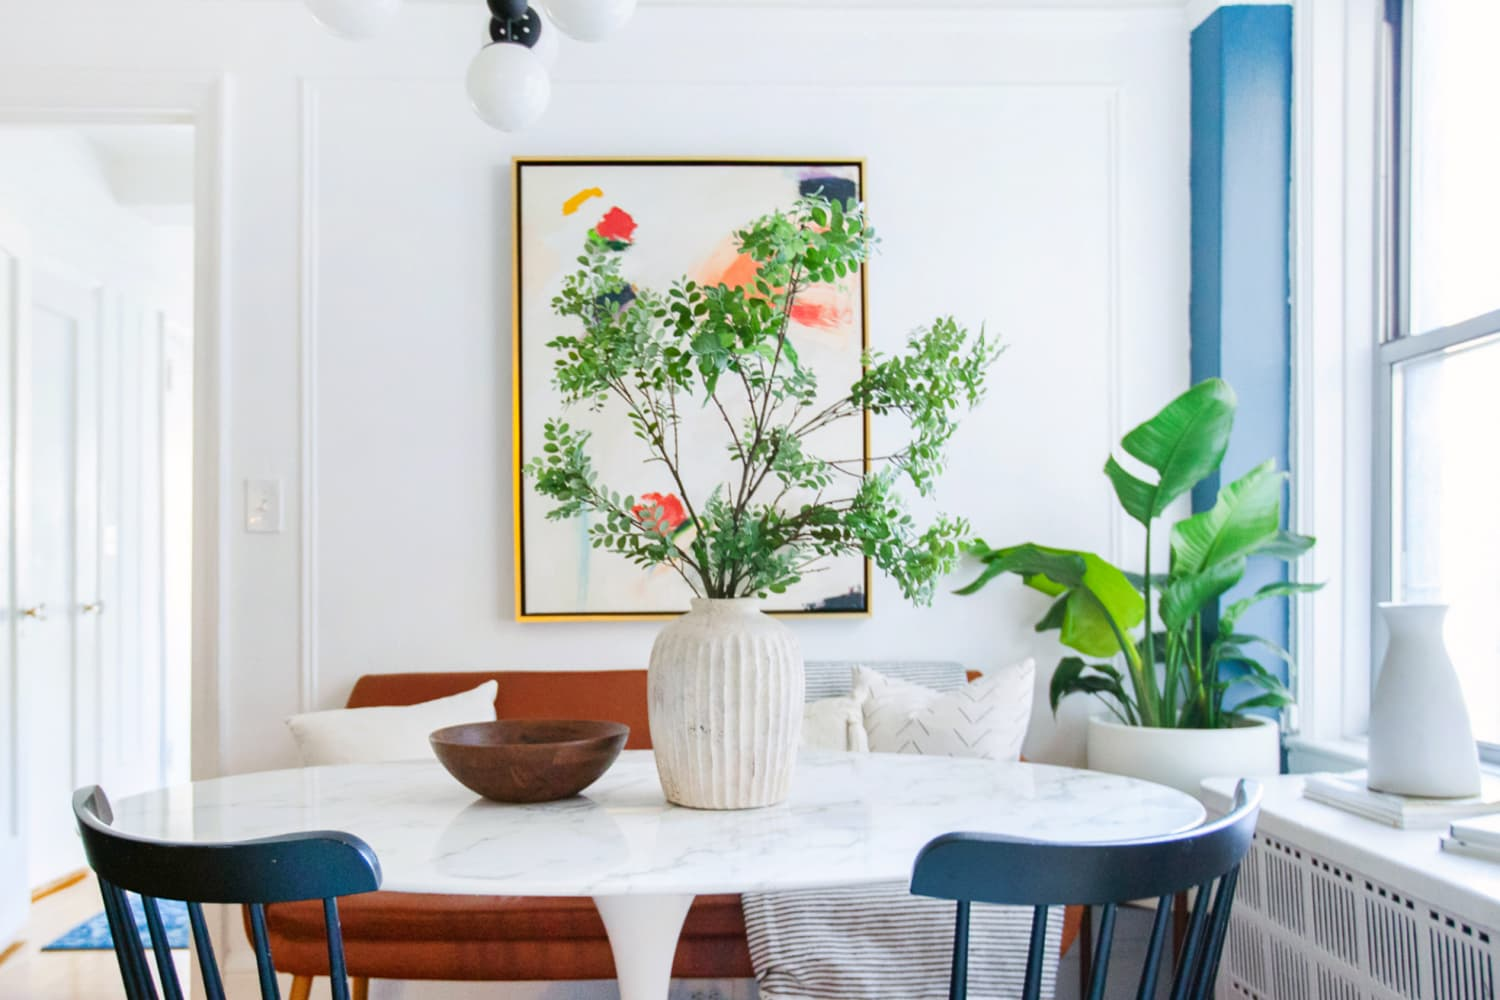 A Family of Four Is Living in a Stylish, Extremely Organized 700 Square Feet